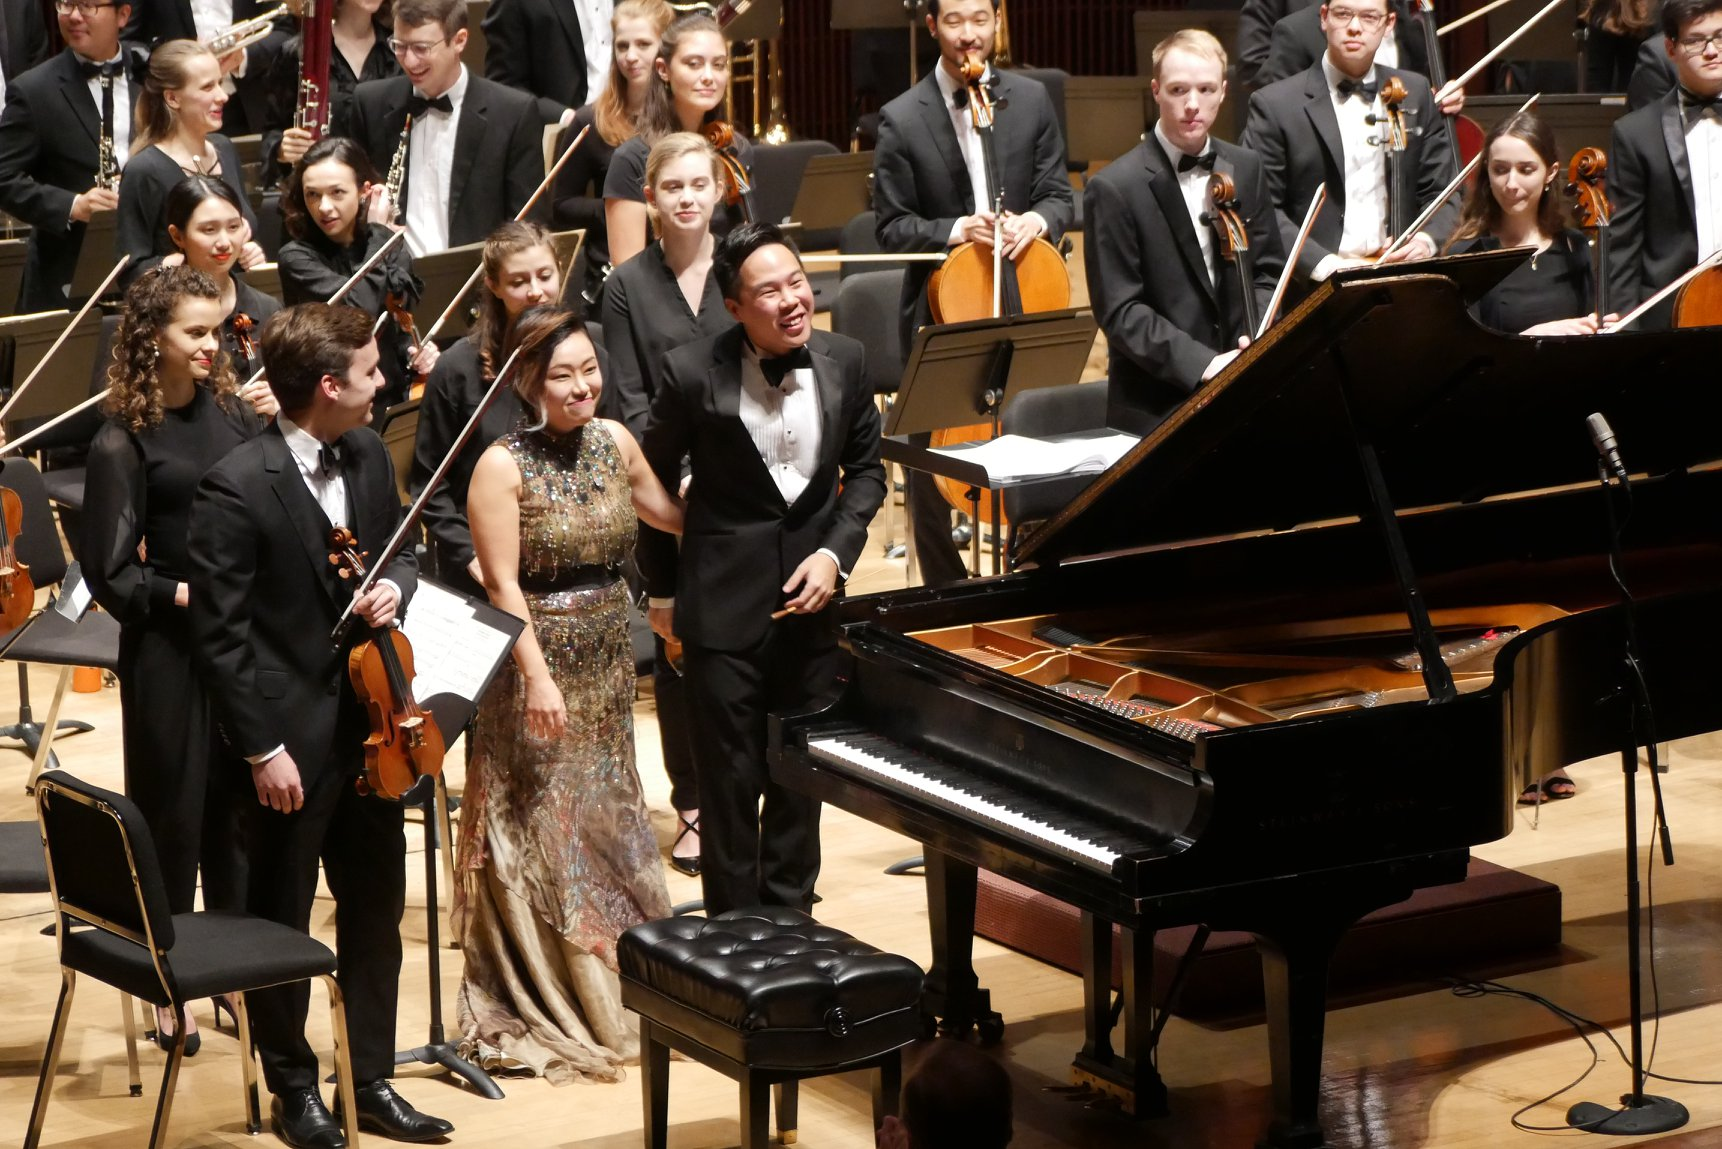 Saint-Saëns' Fifth Piano Concerto with soloist Saetbyeol Kim and the Shepherd School Symphony Orchestra (2018)